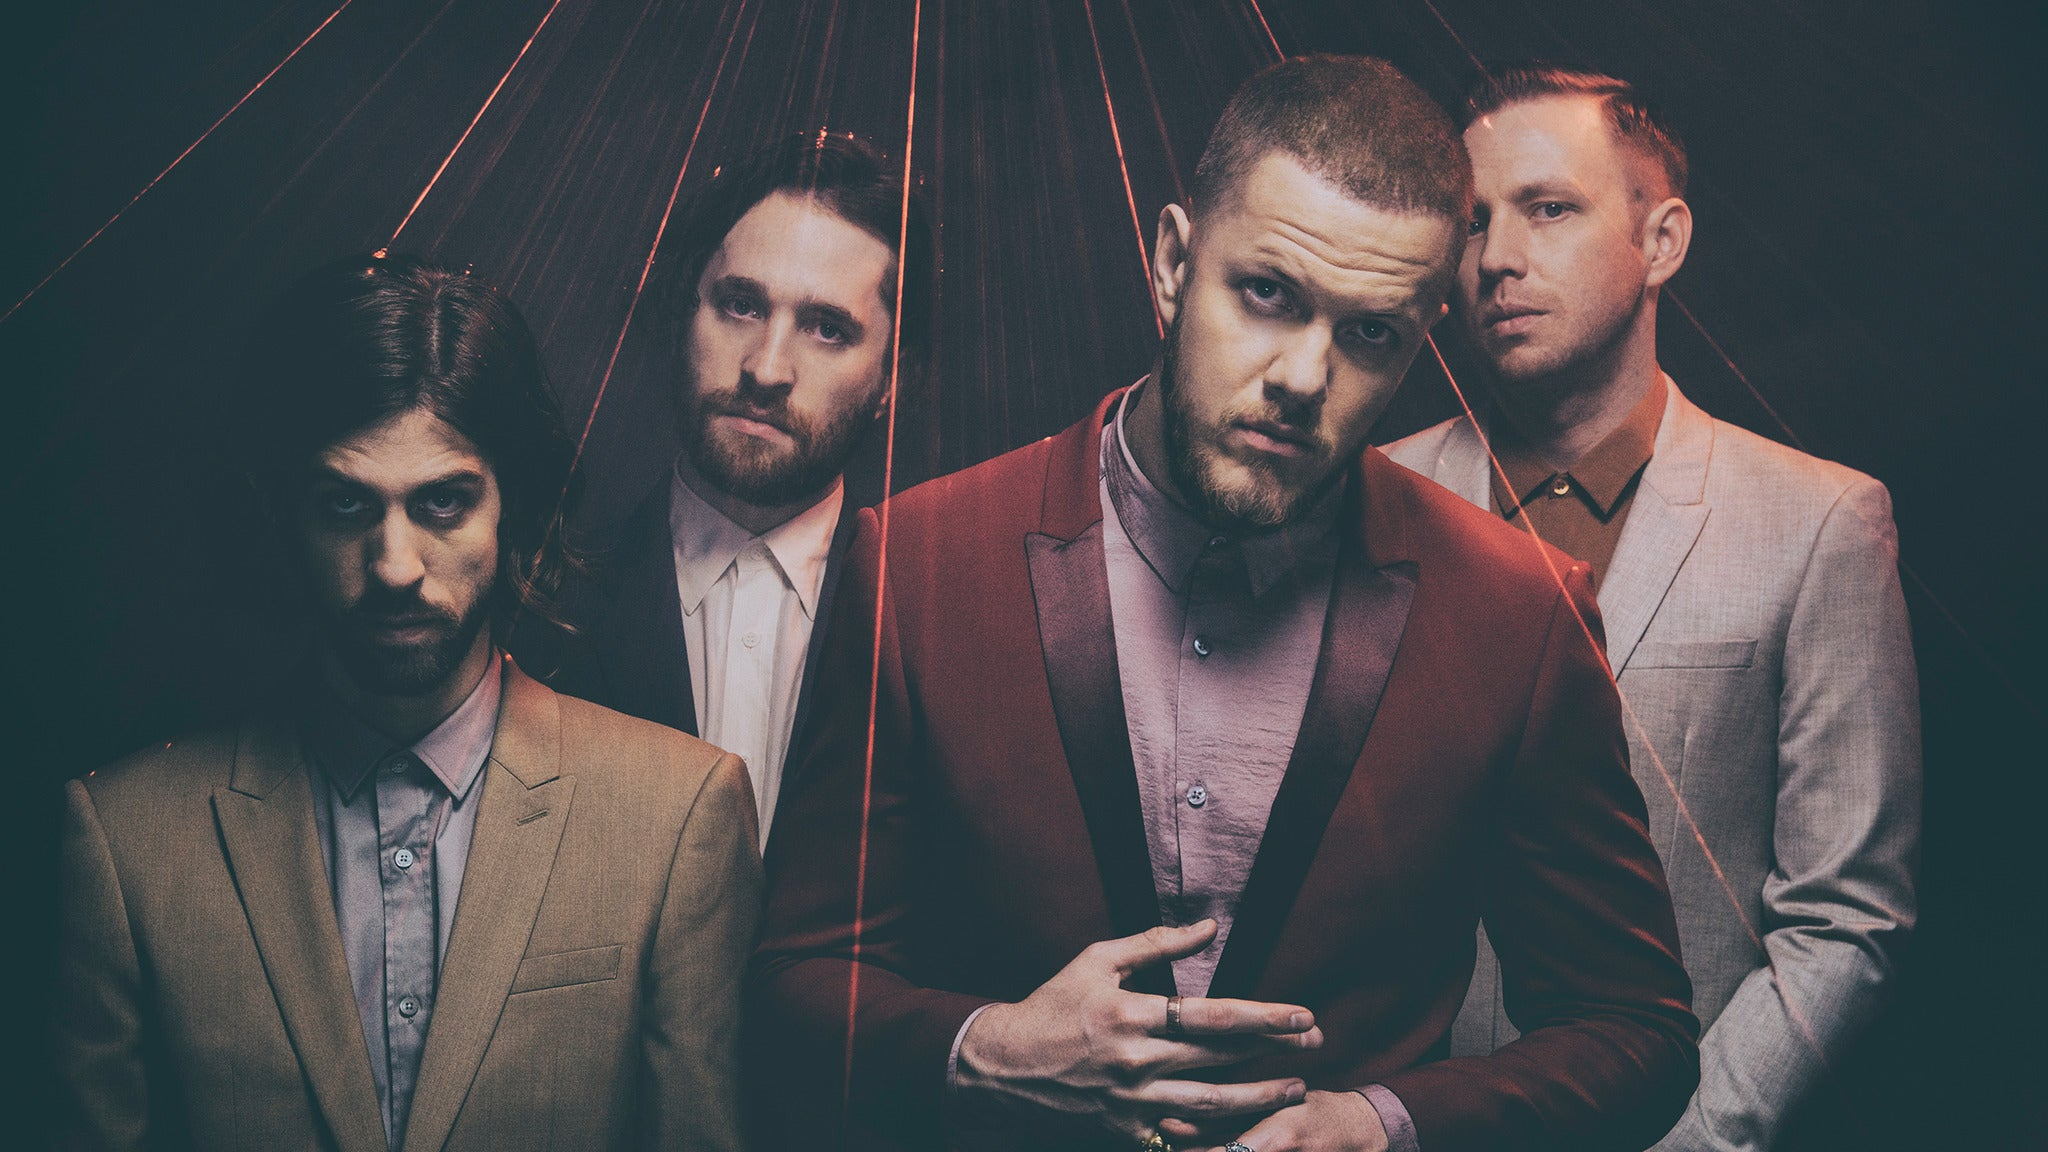 Presented by Jeep Imagine Dragons: EVOLVE TOUR